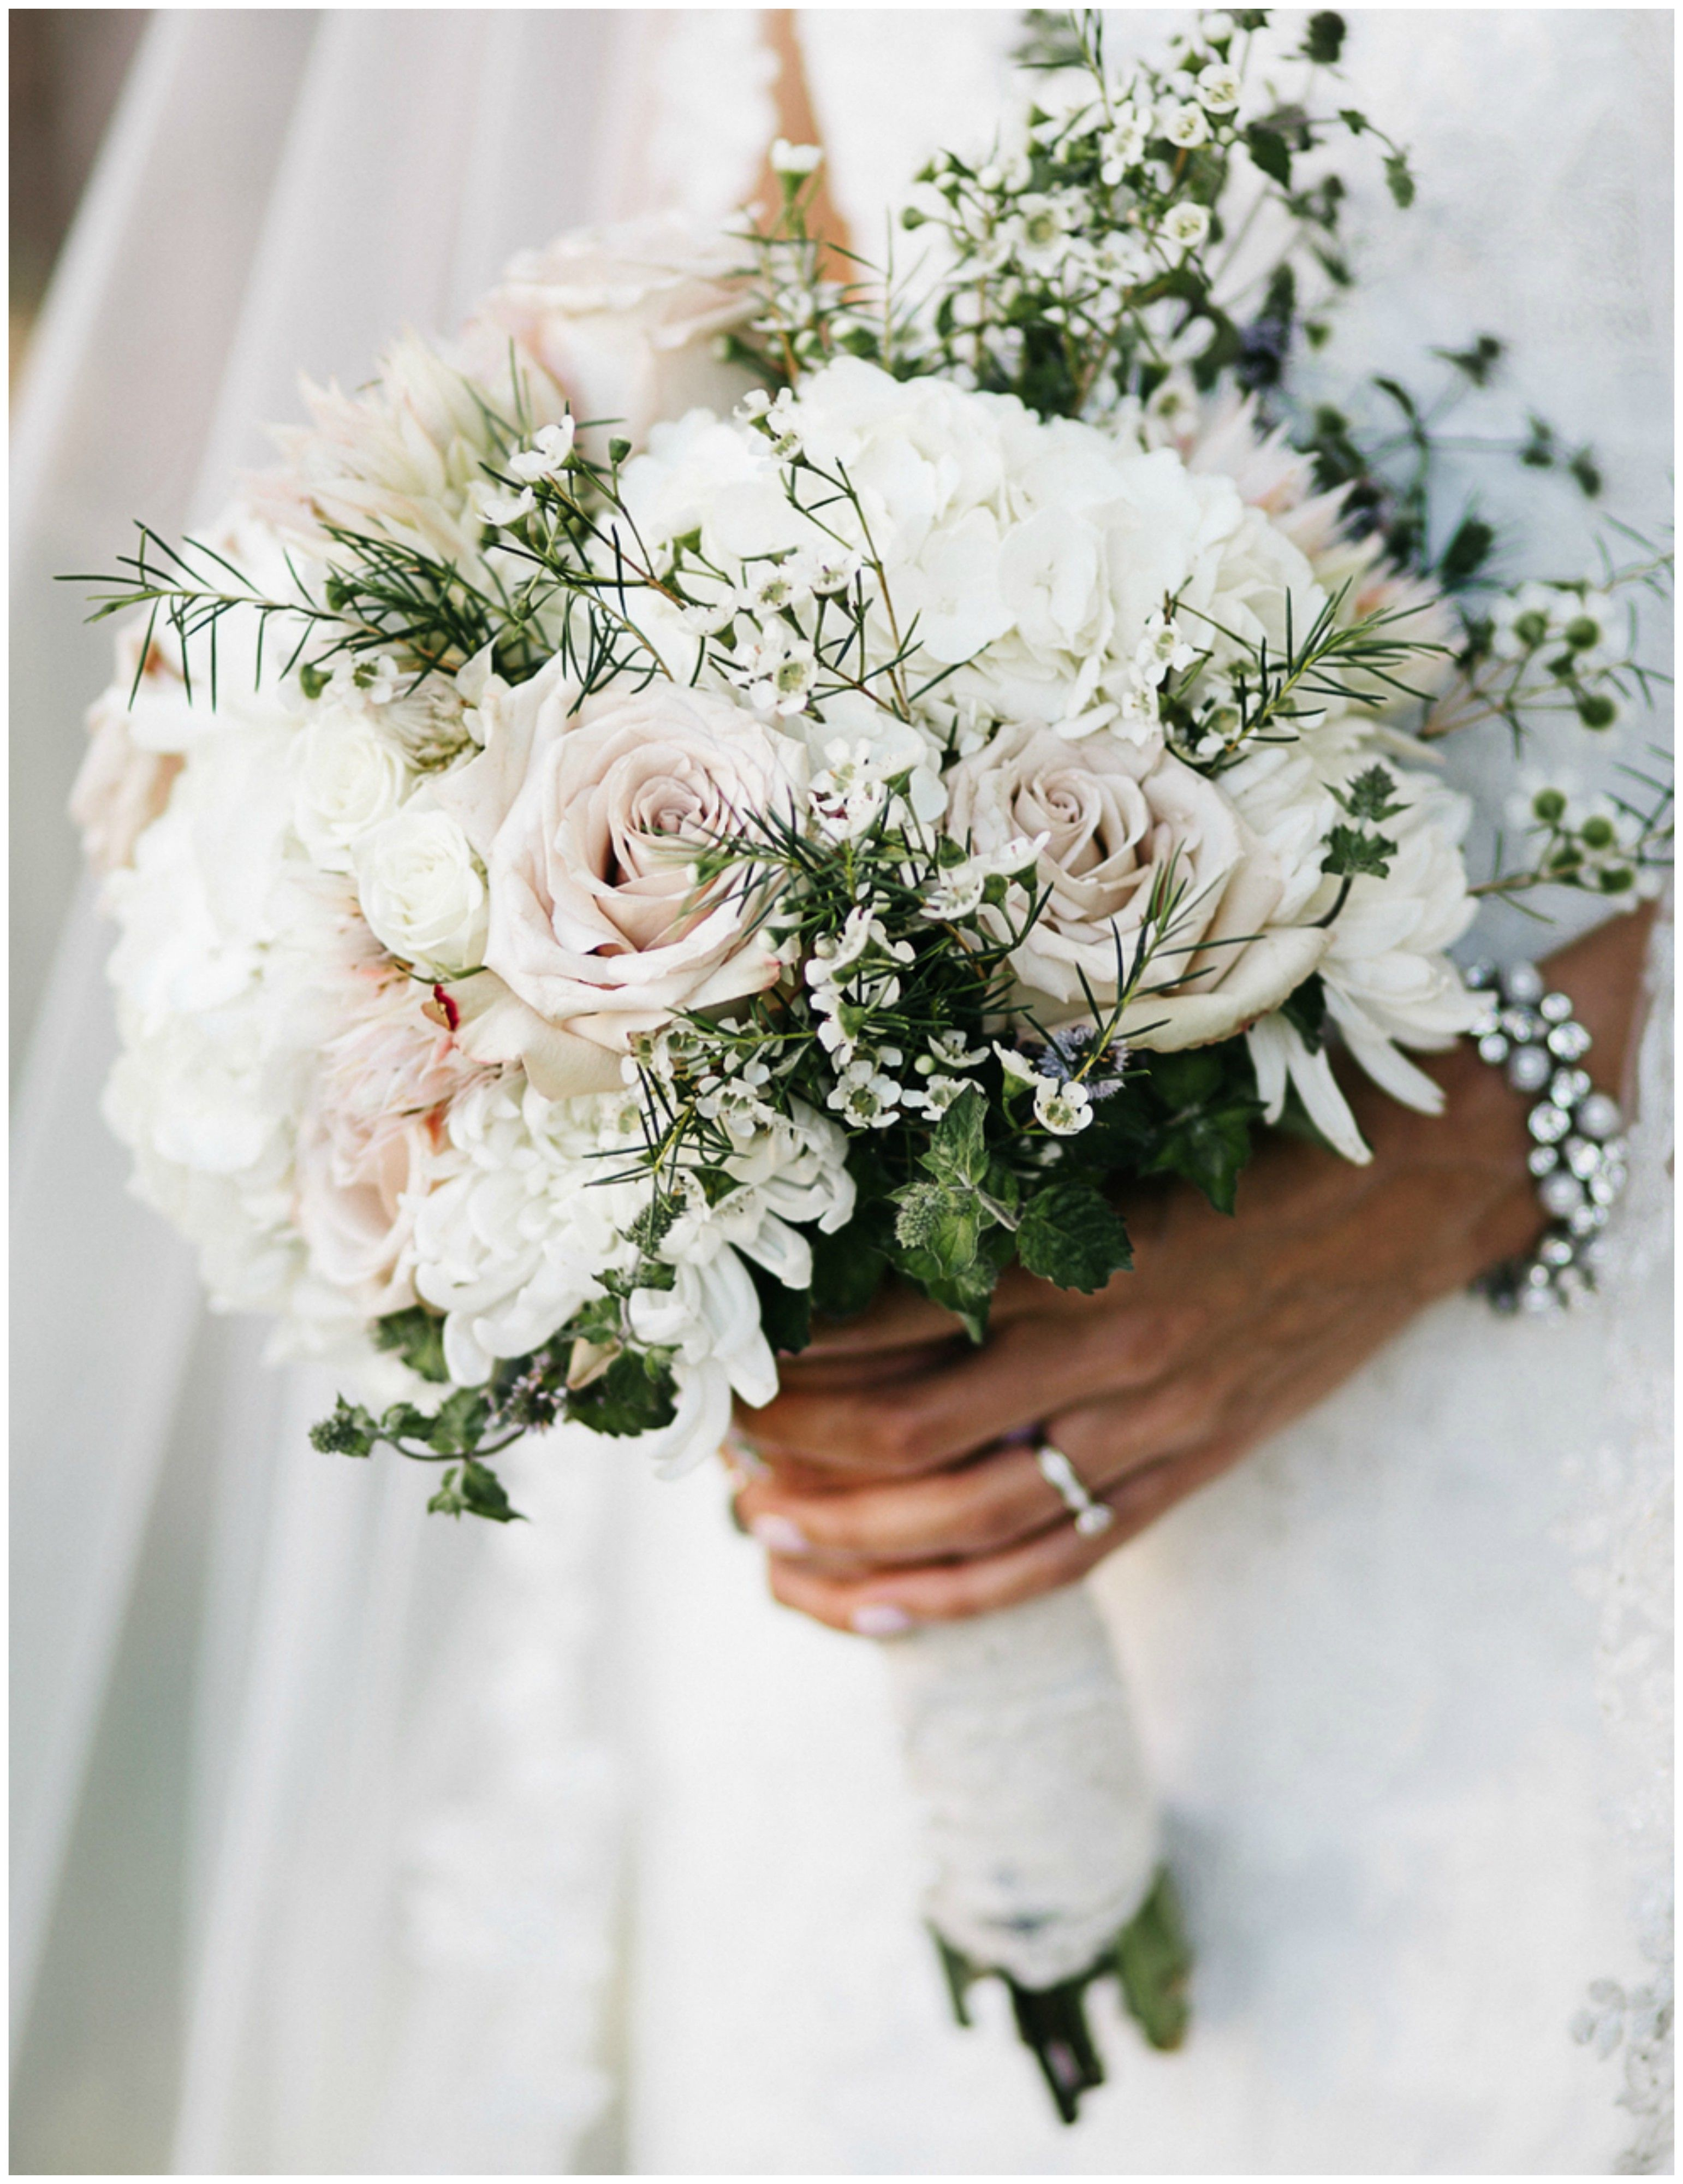 classic wedding bouquet, white florals, roses, pin to your